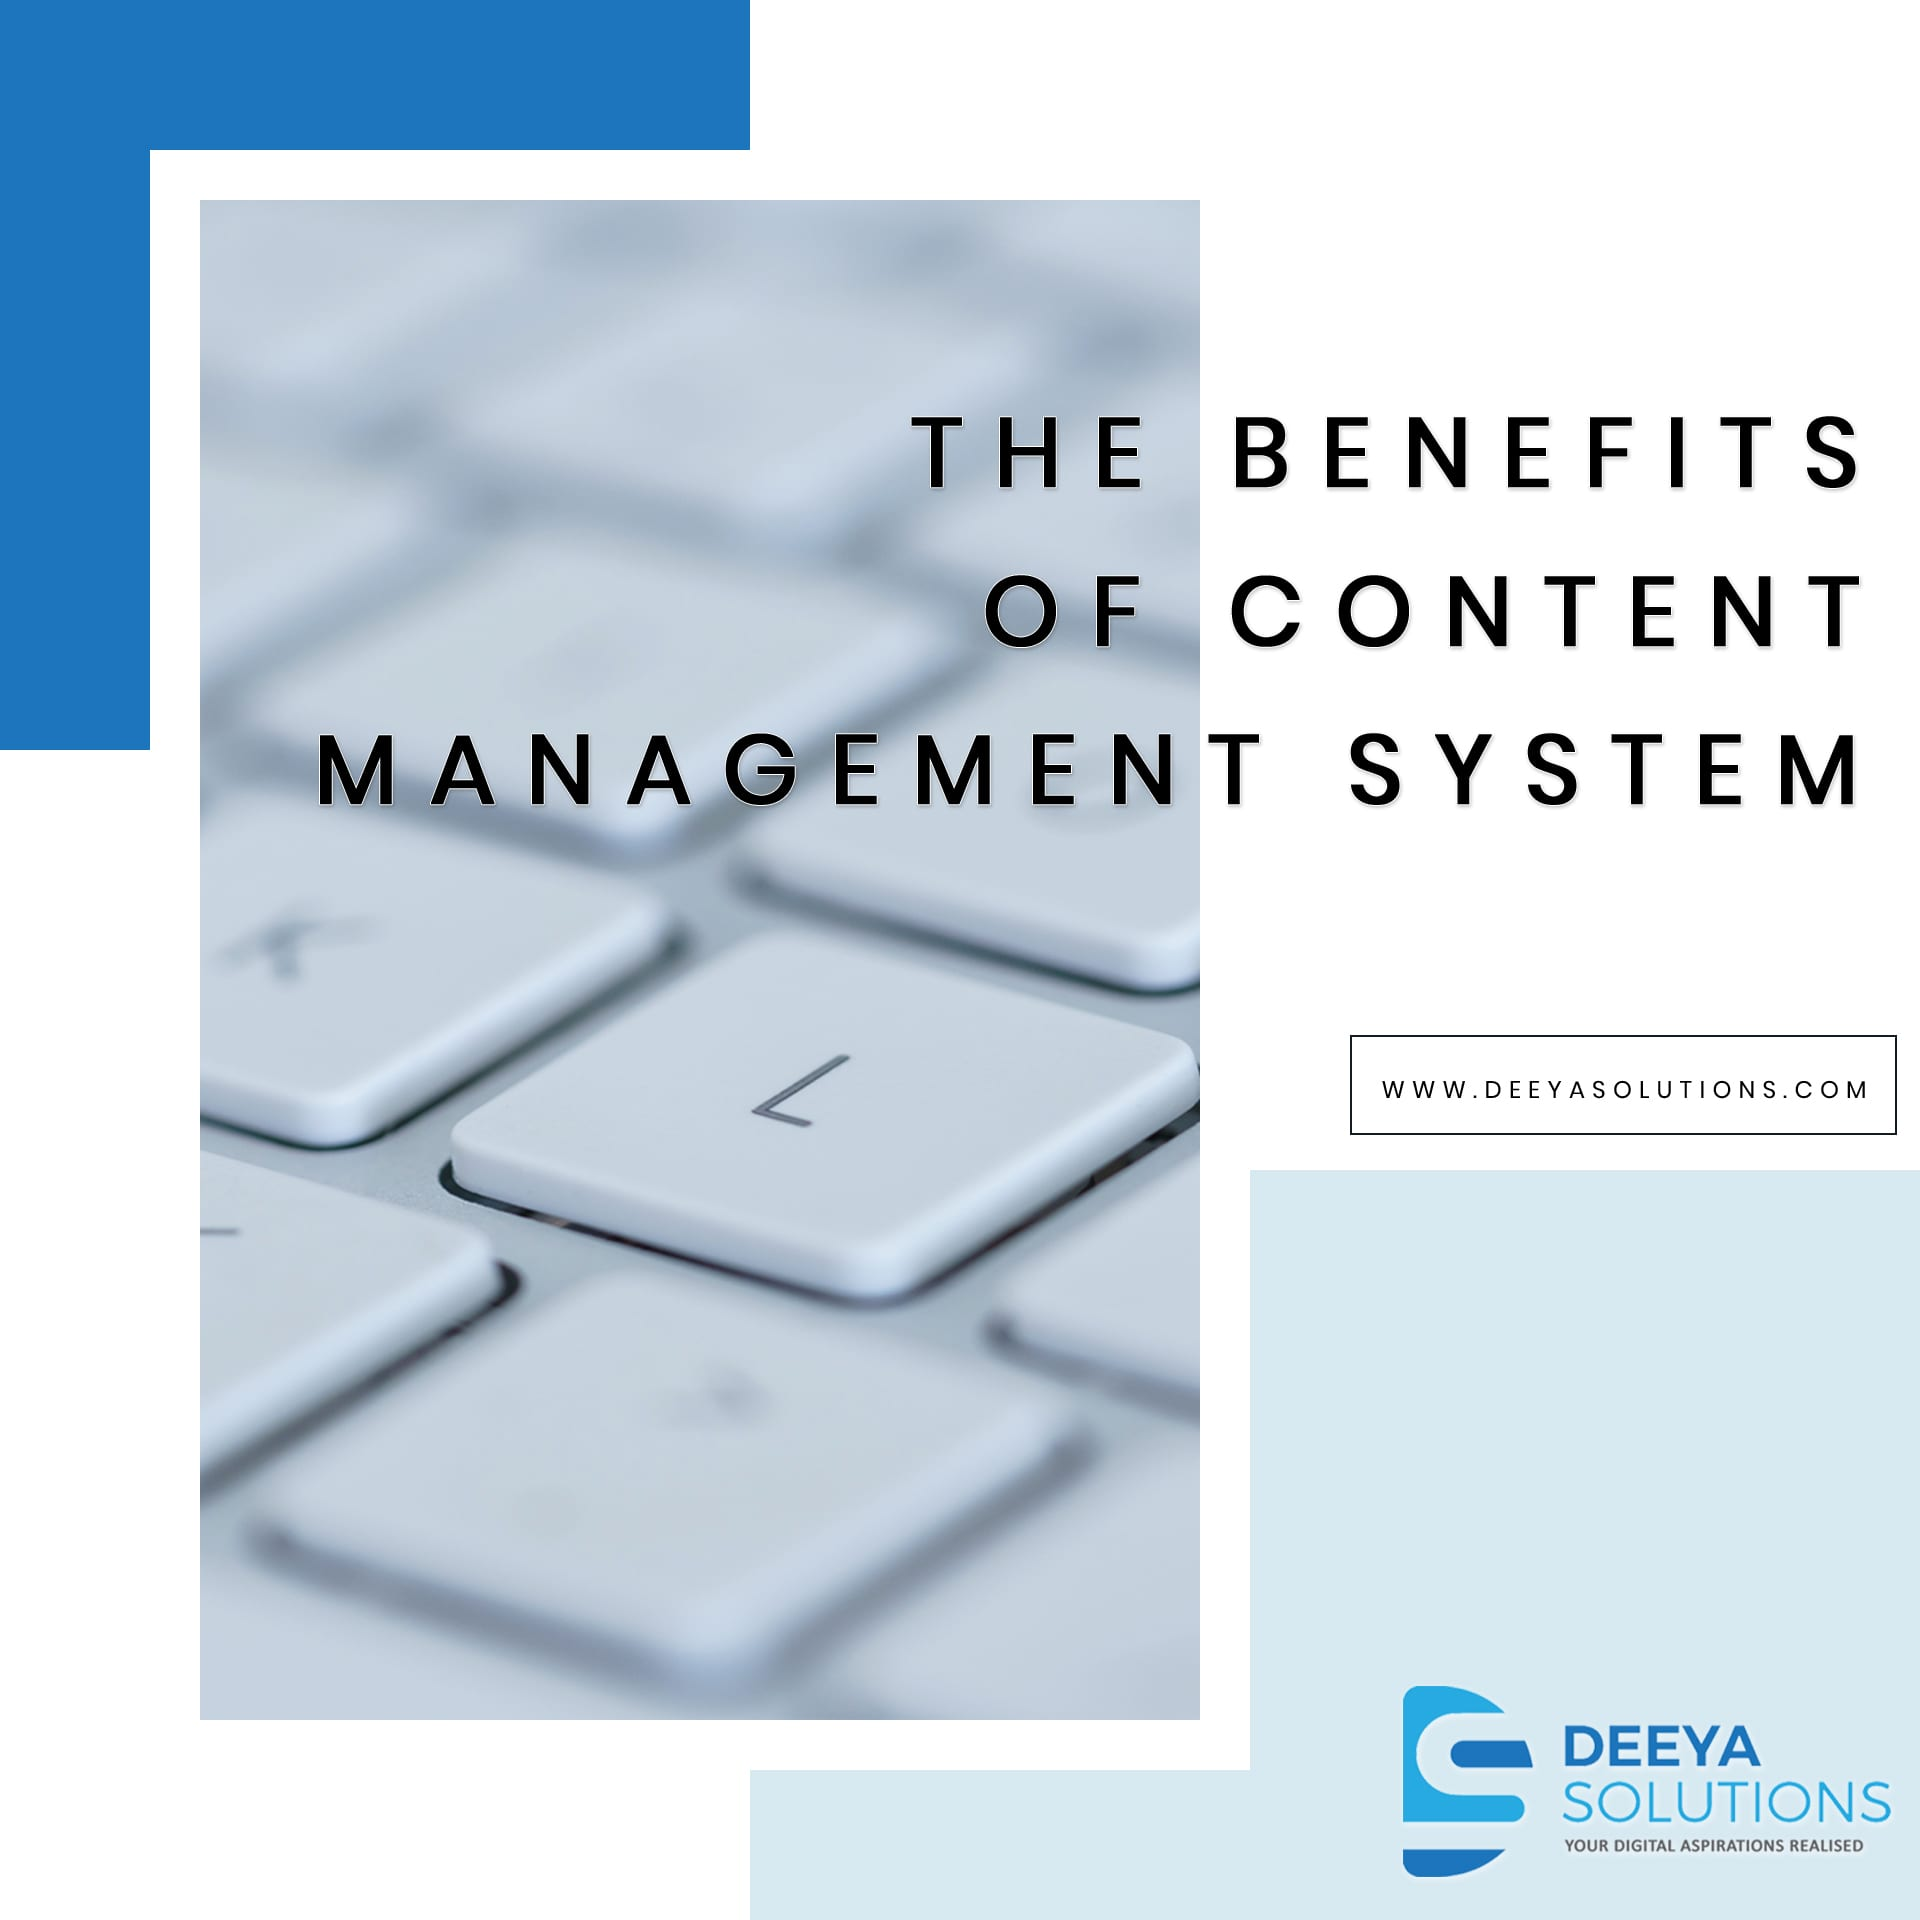 The benefits of Content Management Systems